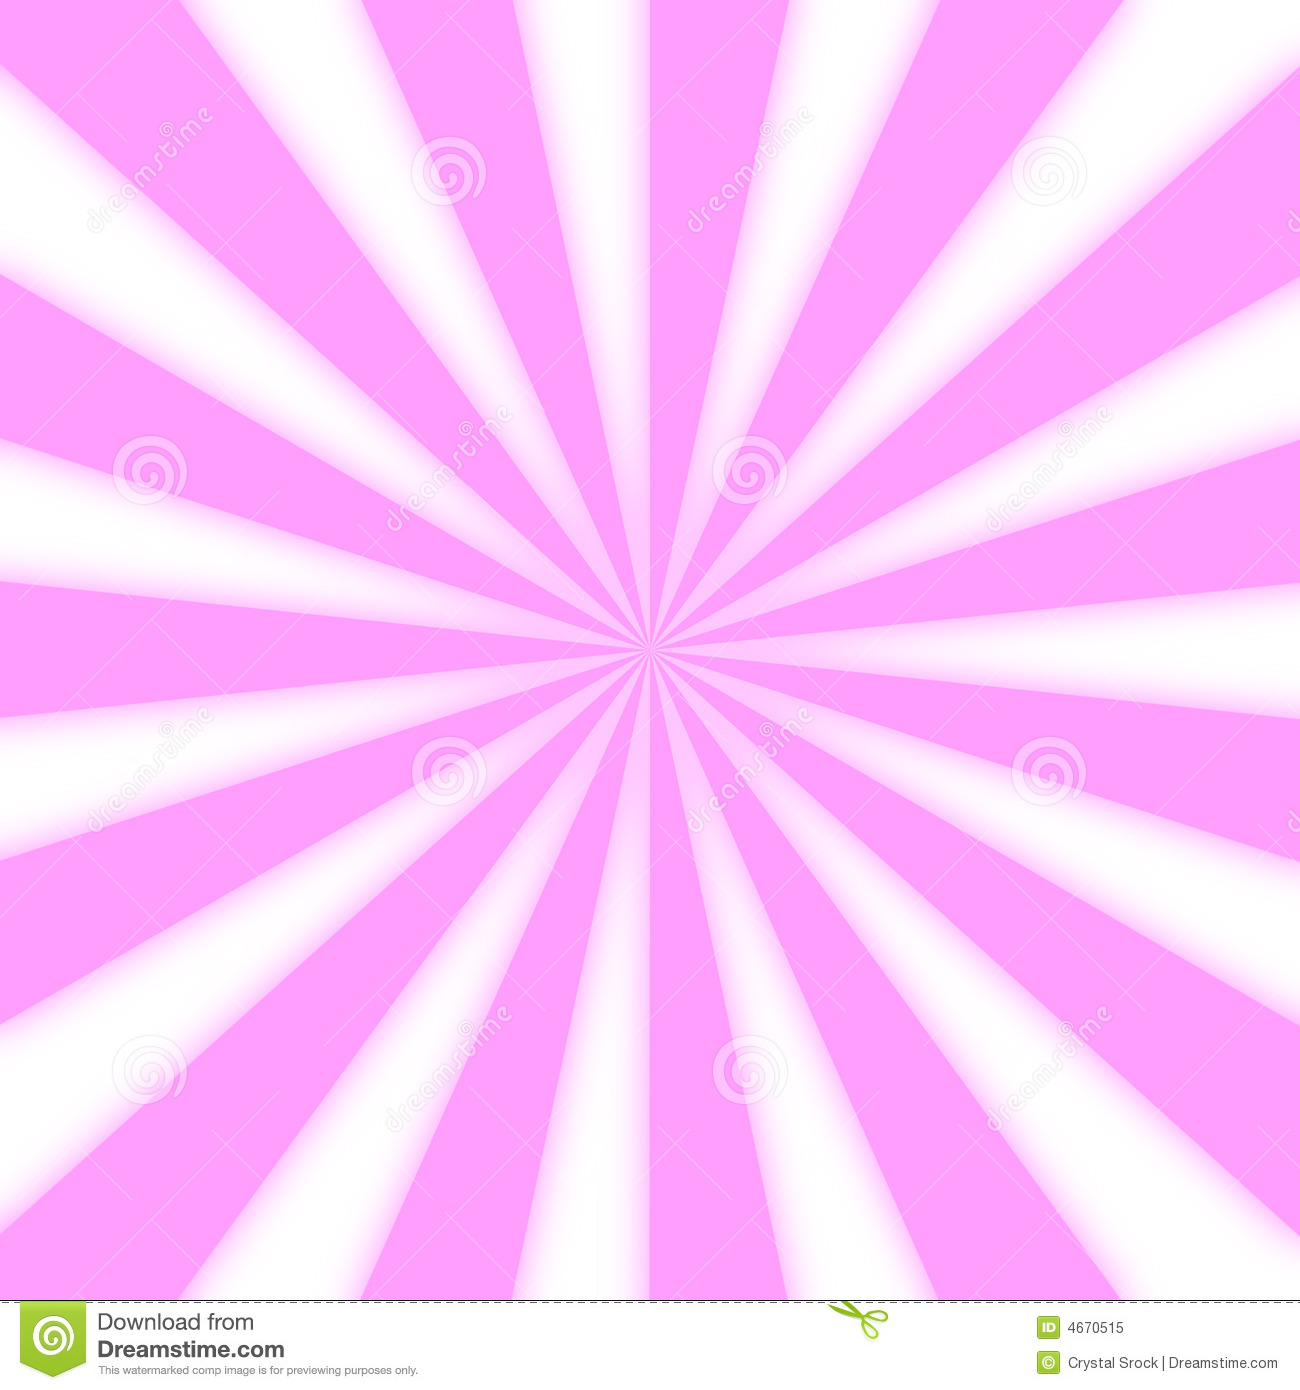 Light Pink Starburst Royalty Free Stock Photo   Image  4670515